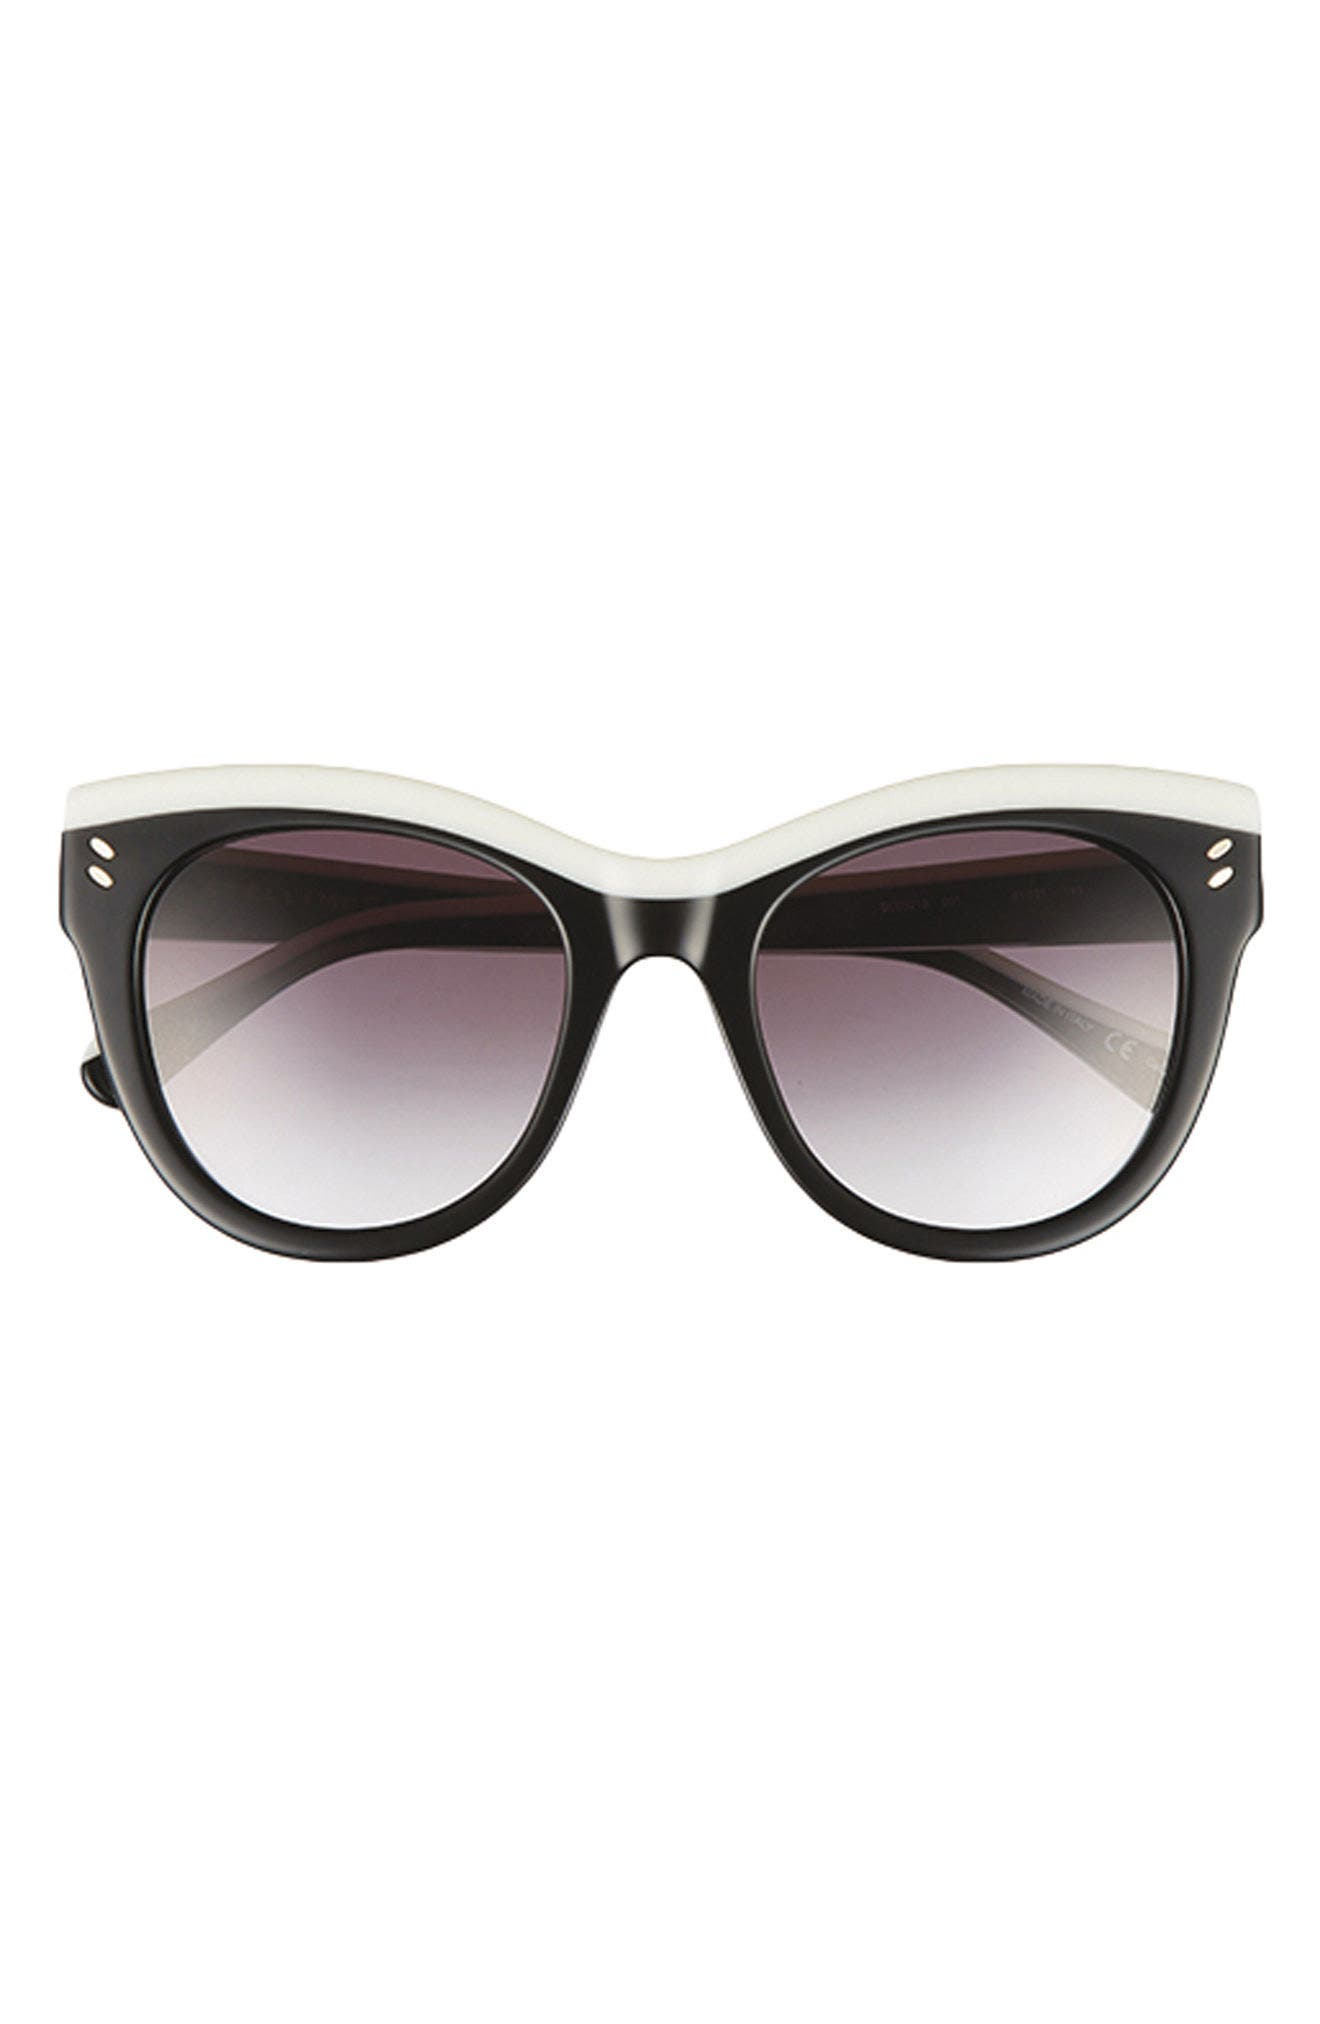 51mm Cat Eye Sunglasses,                             Alternate thumbnail 10, color,